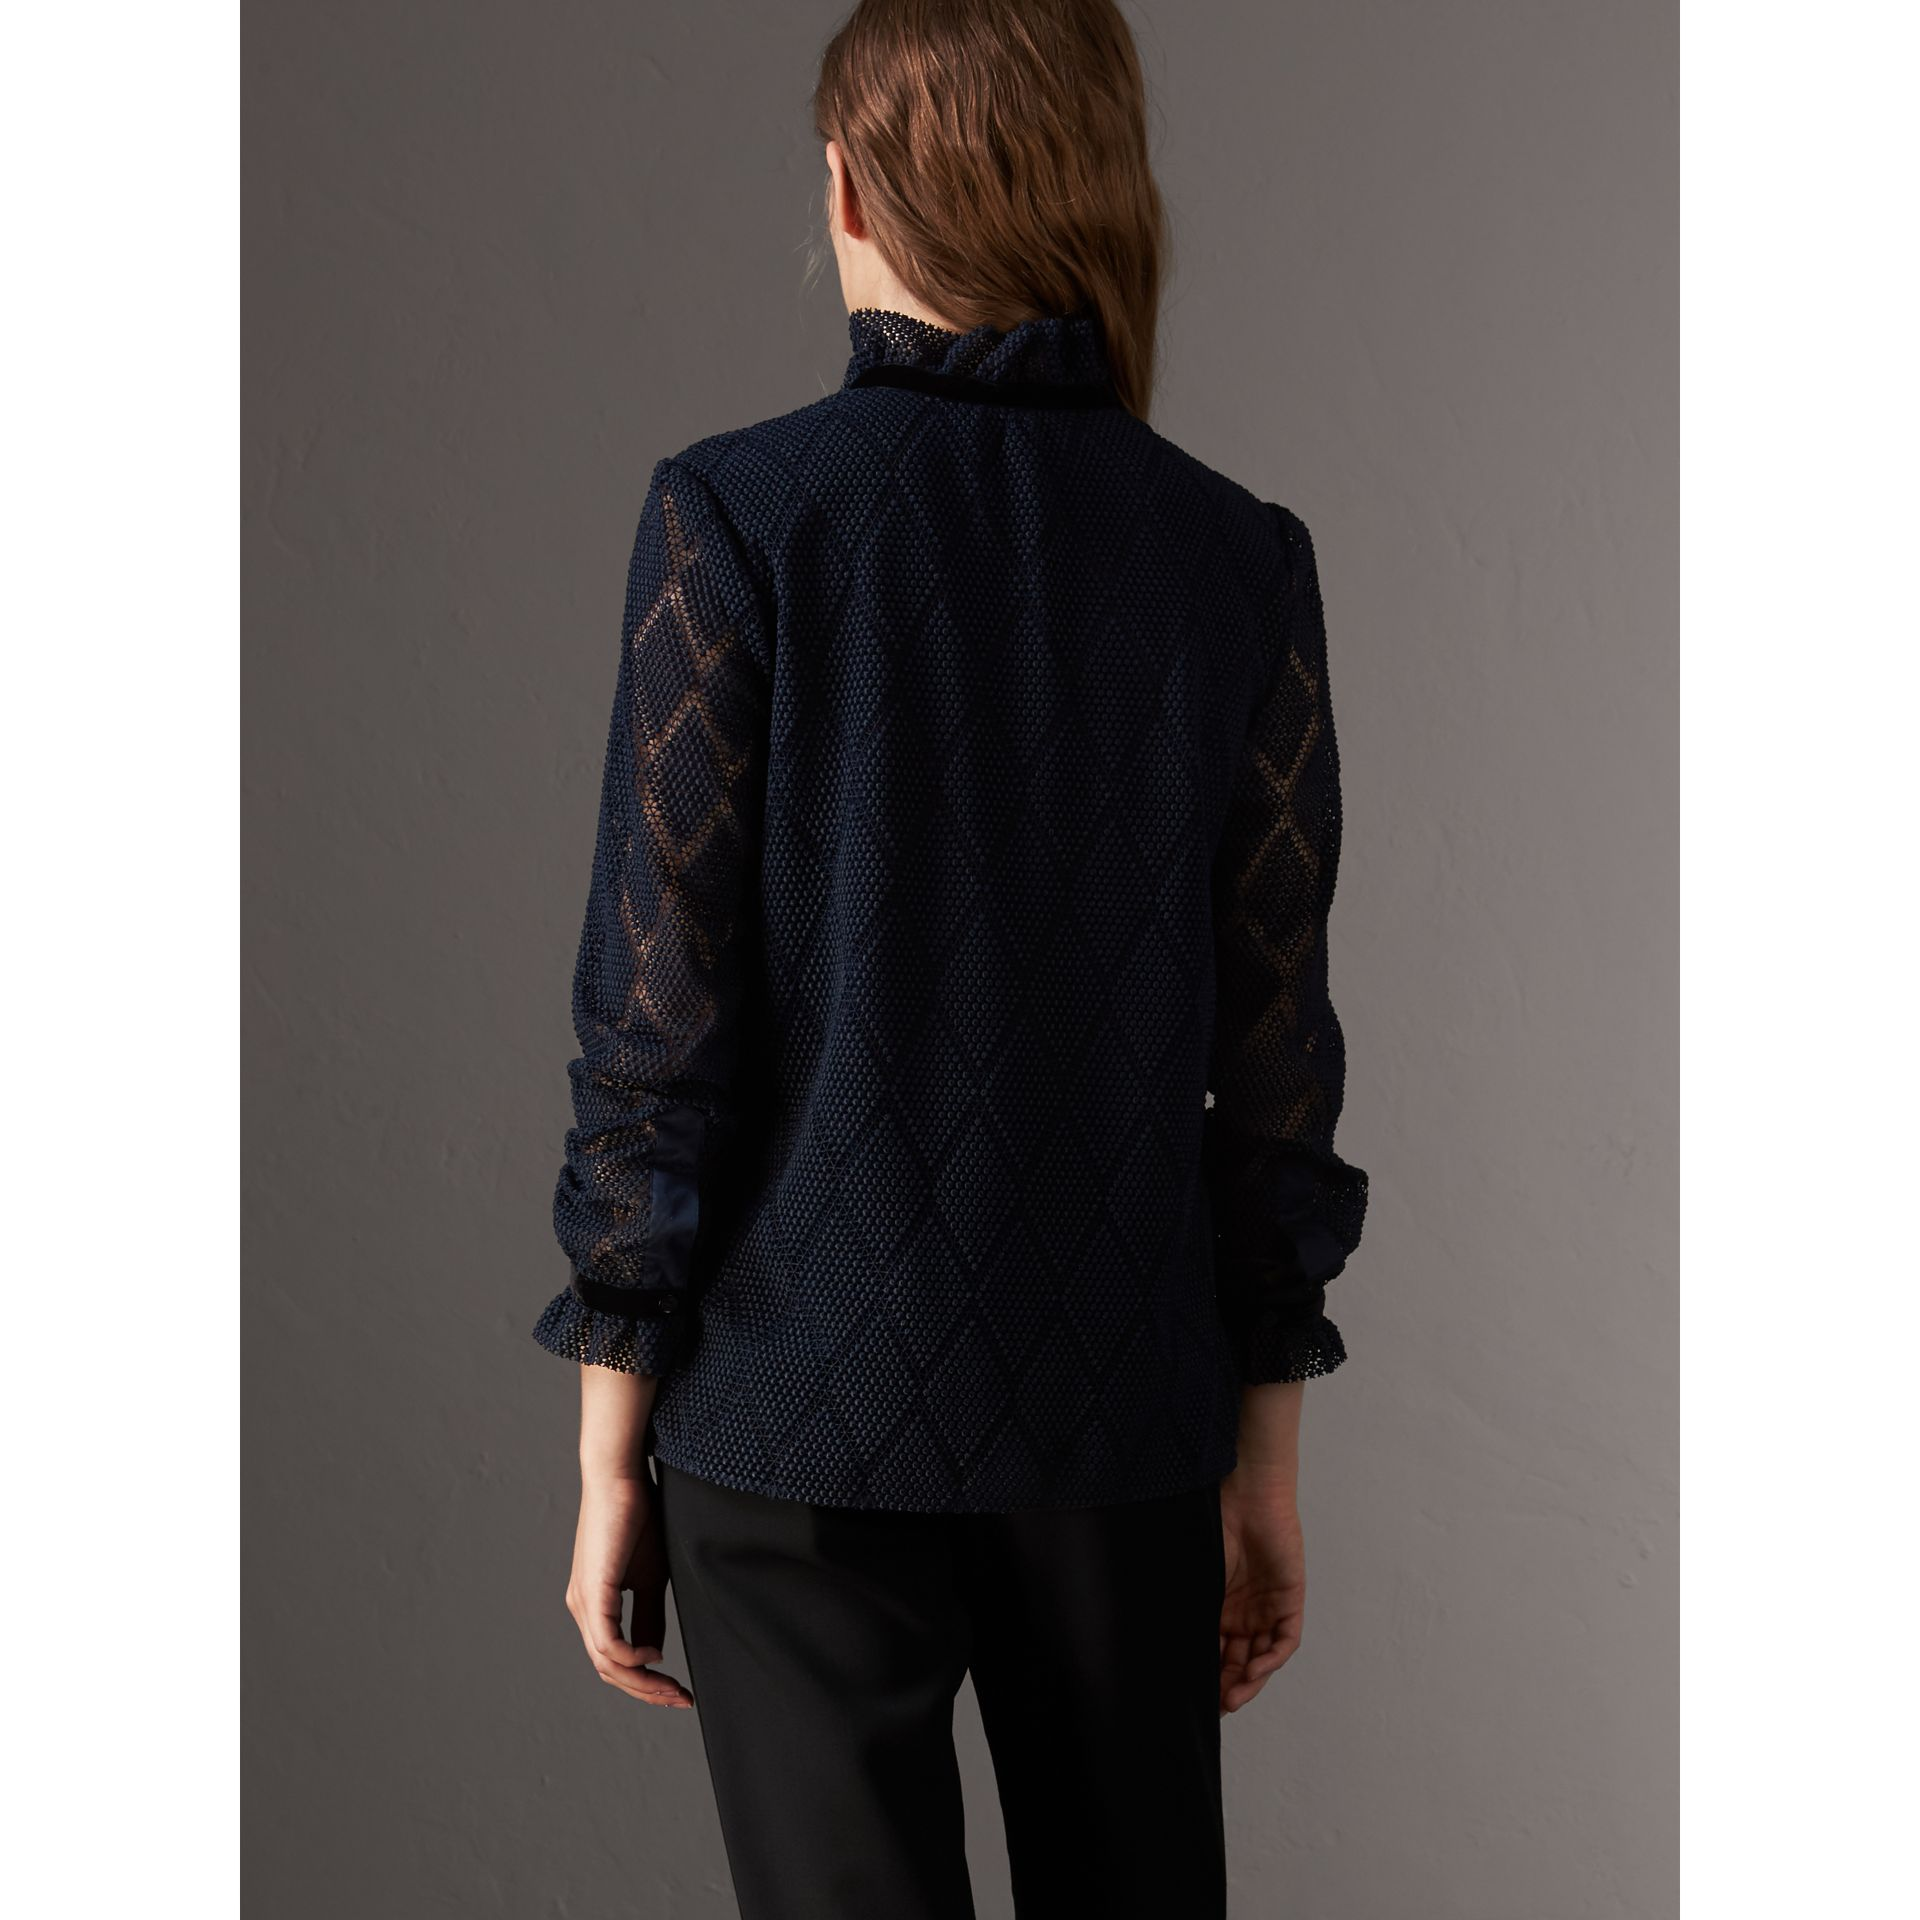 Geometric Lace Tie-neck Shirt in Navy - Women | Burberry - gallery image 3